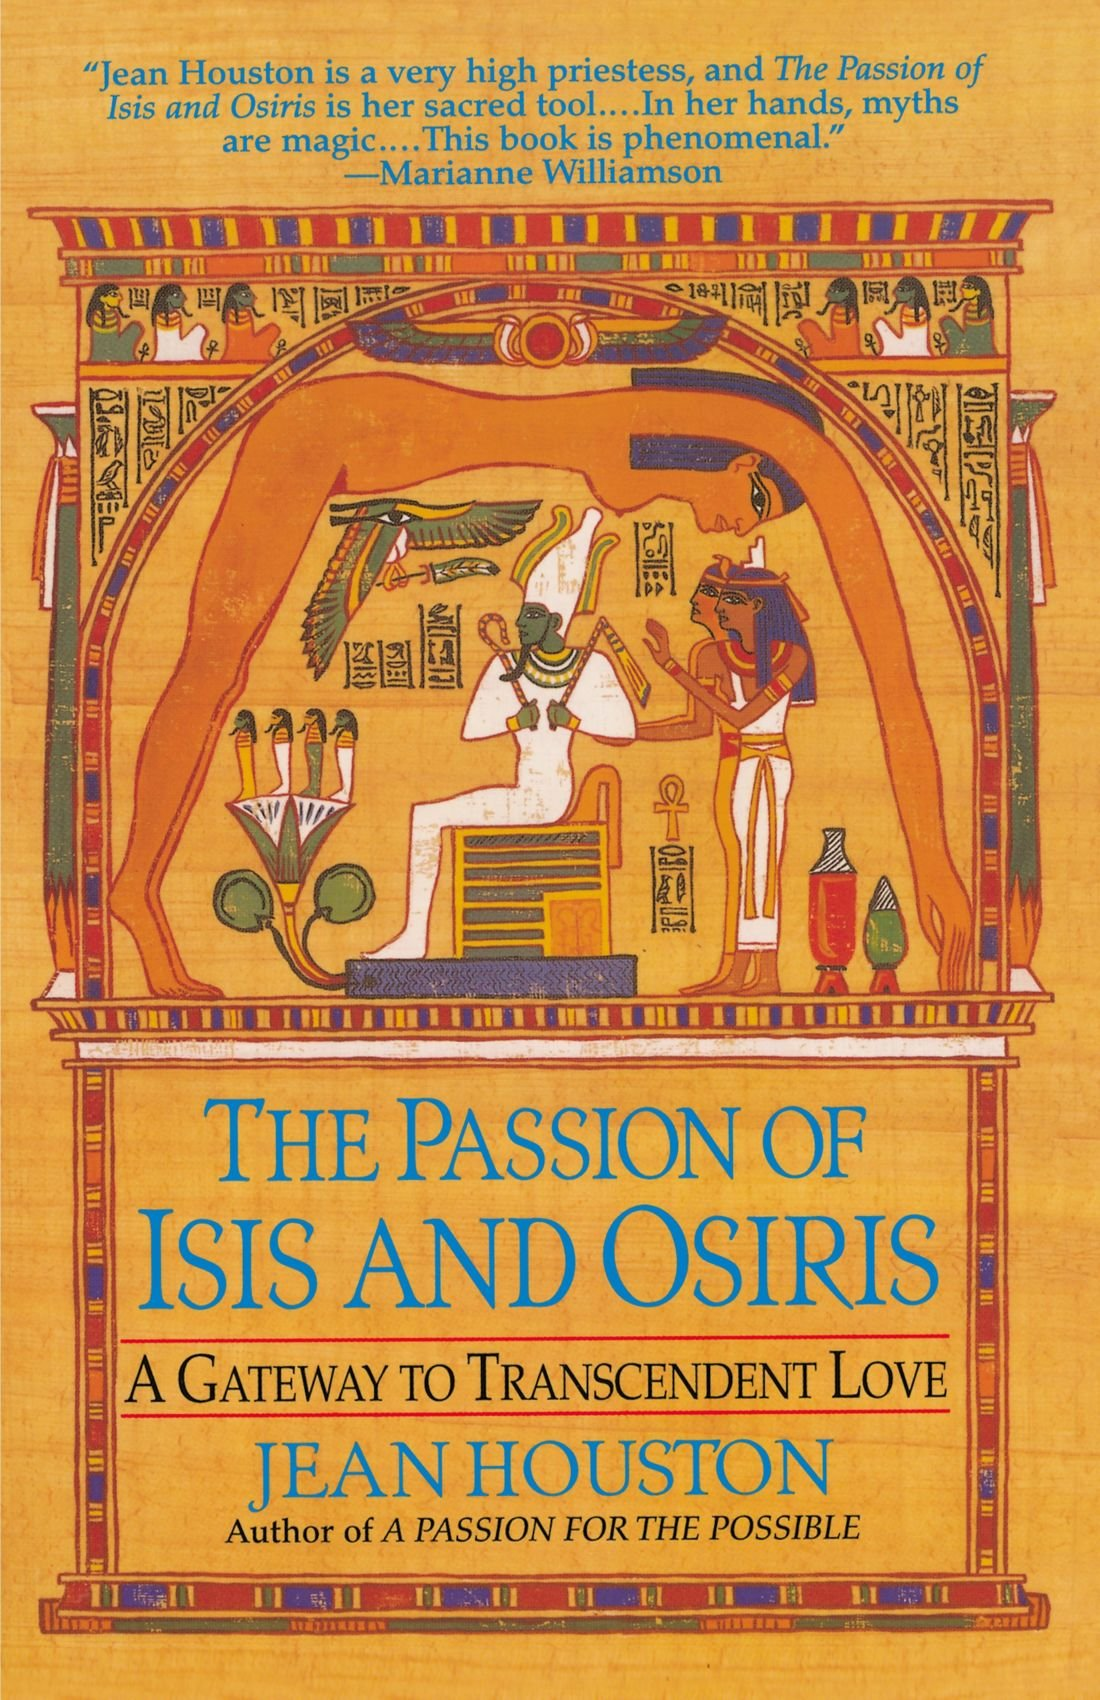 The Passion of Isis and Osiris: A Gateway to Transcendent